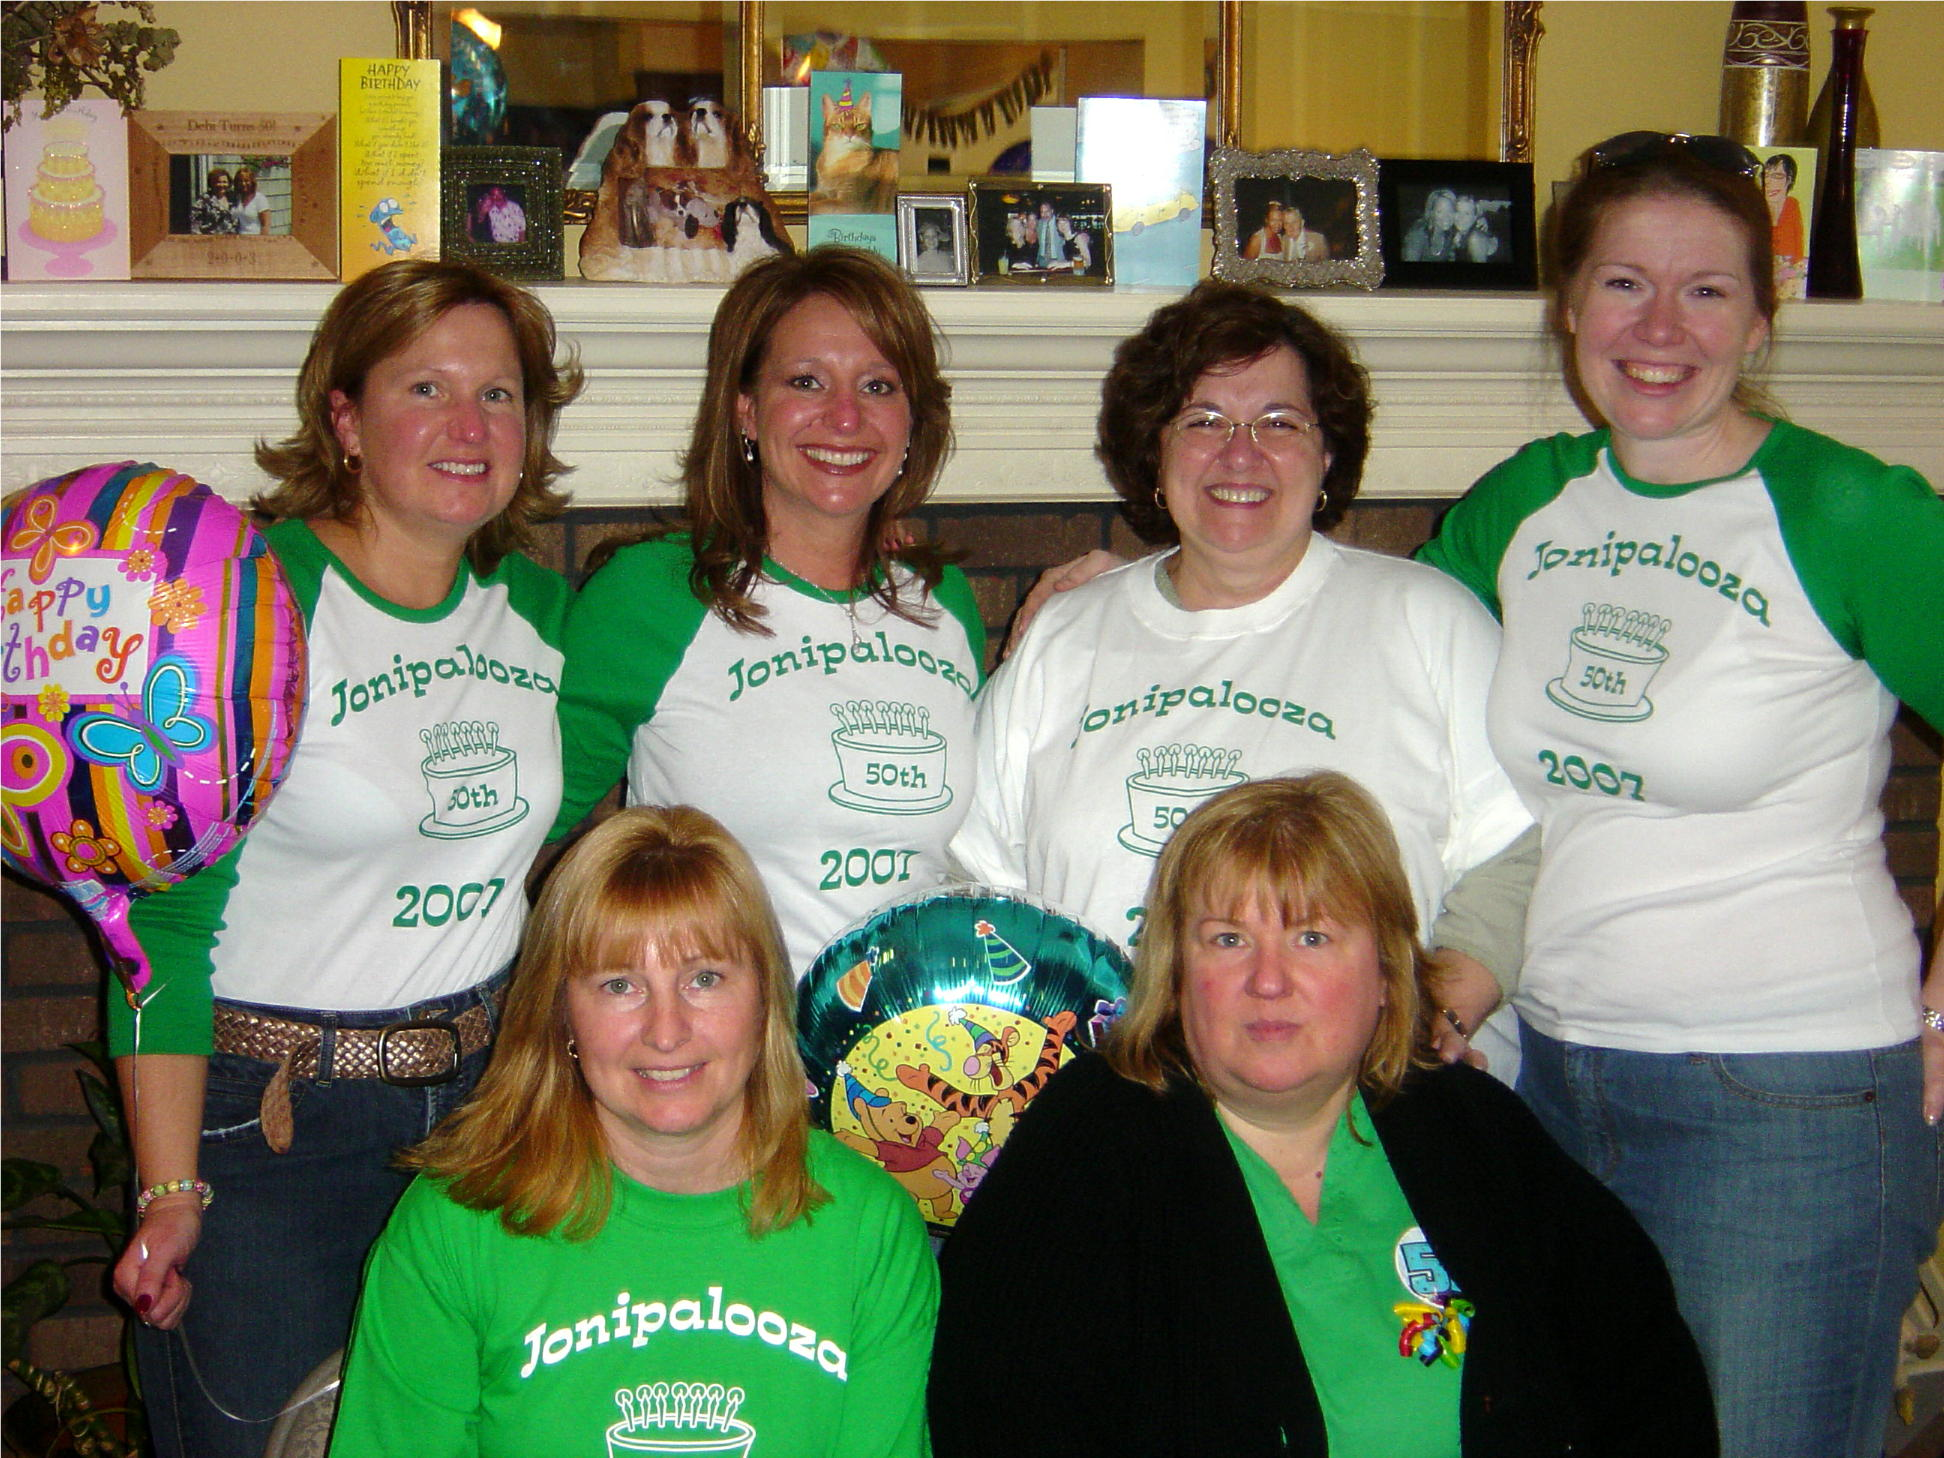 Surprise 50th Birthday St Pattys Day T Shirt Photo